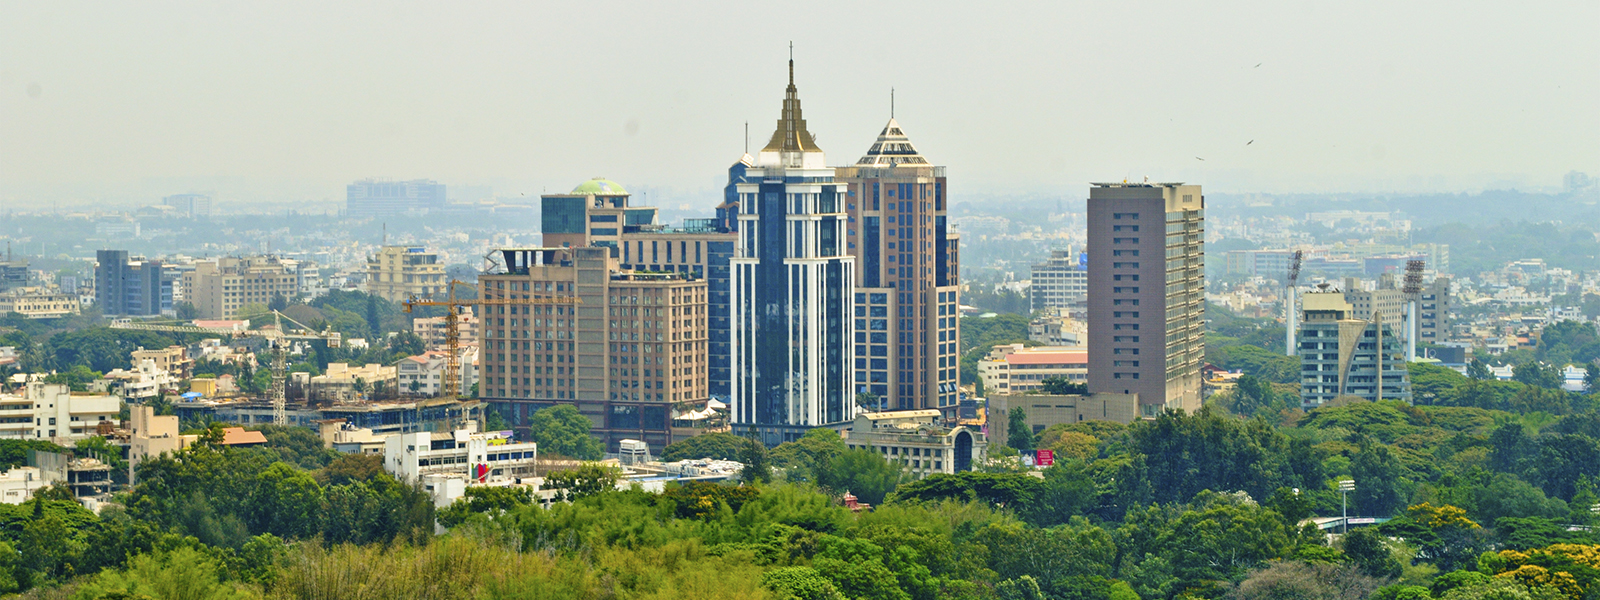 Skyline of Bangalore, India